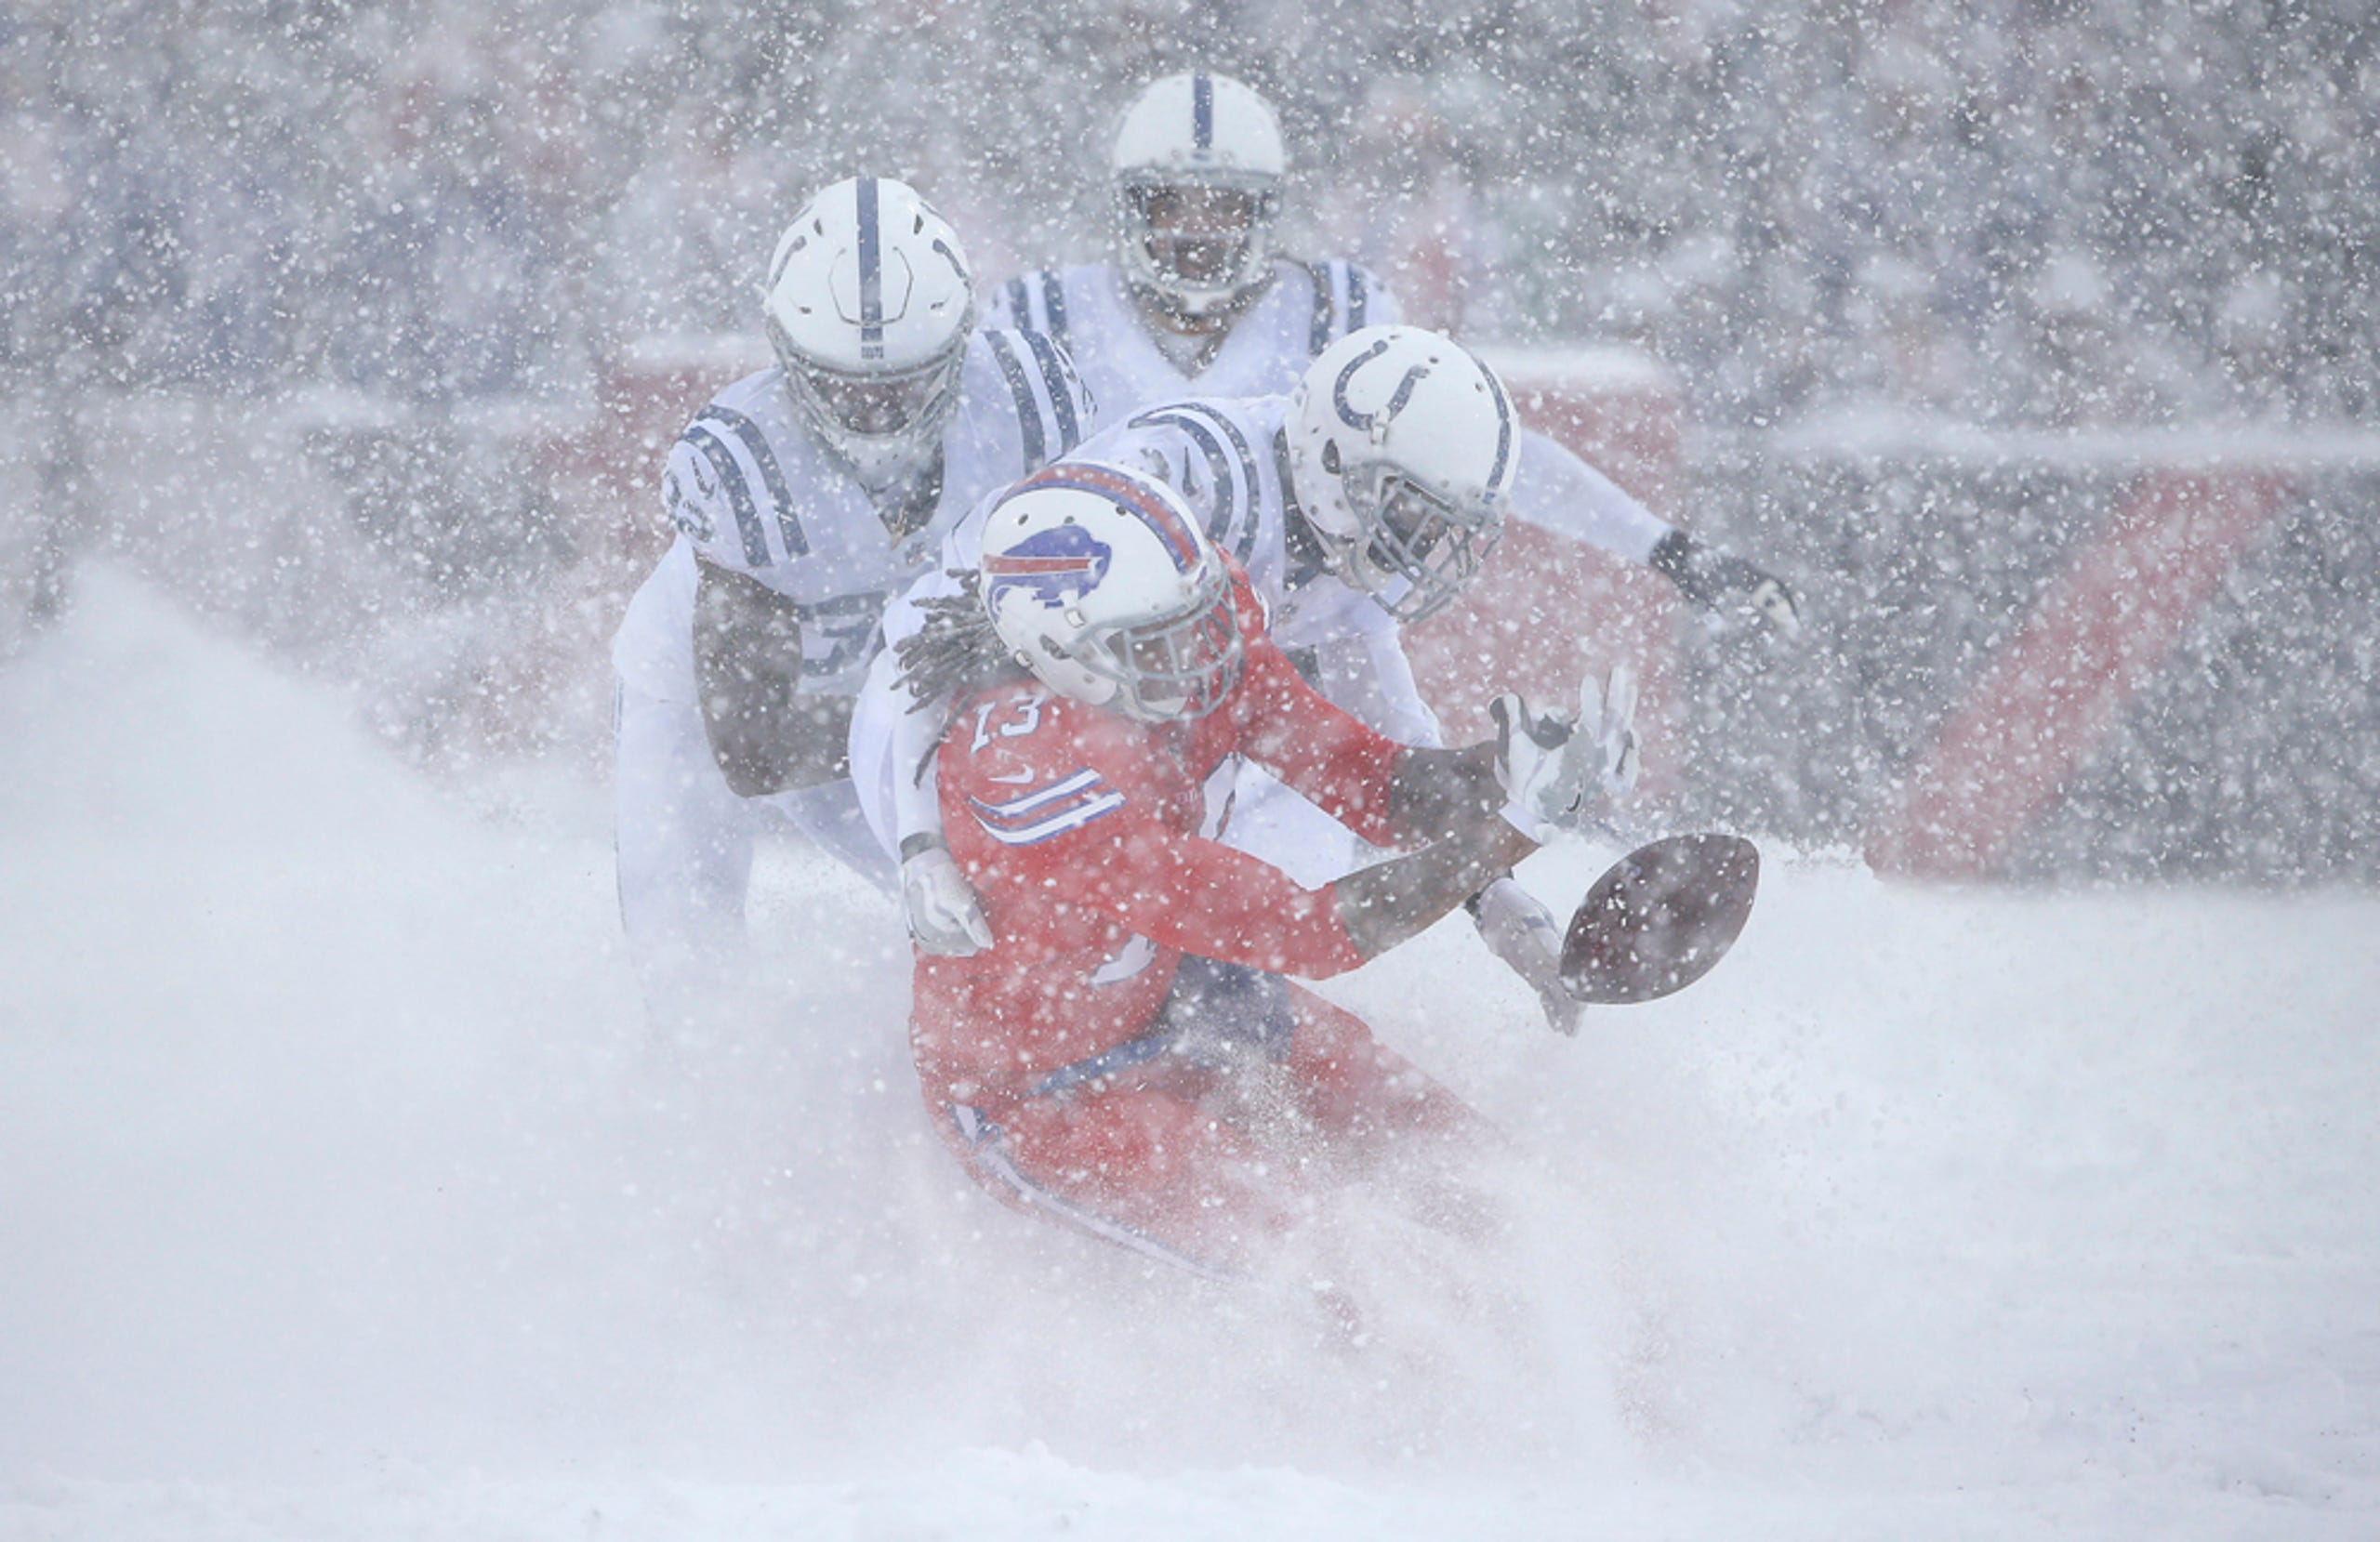 Snow Covered Colts Vs Bills Game Action Photos